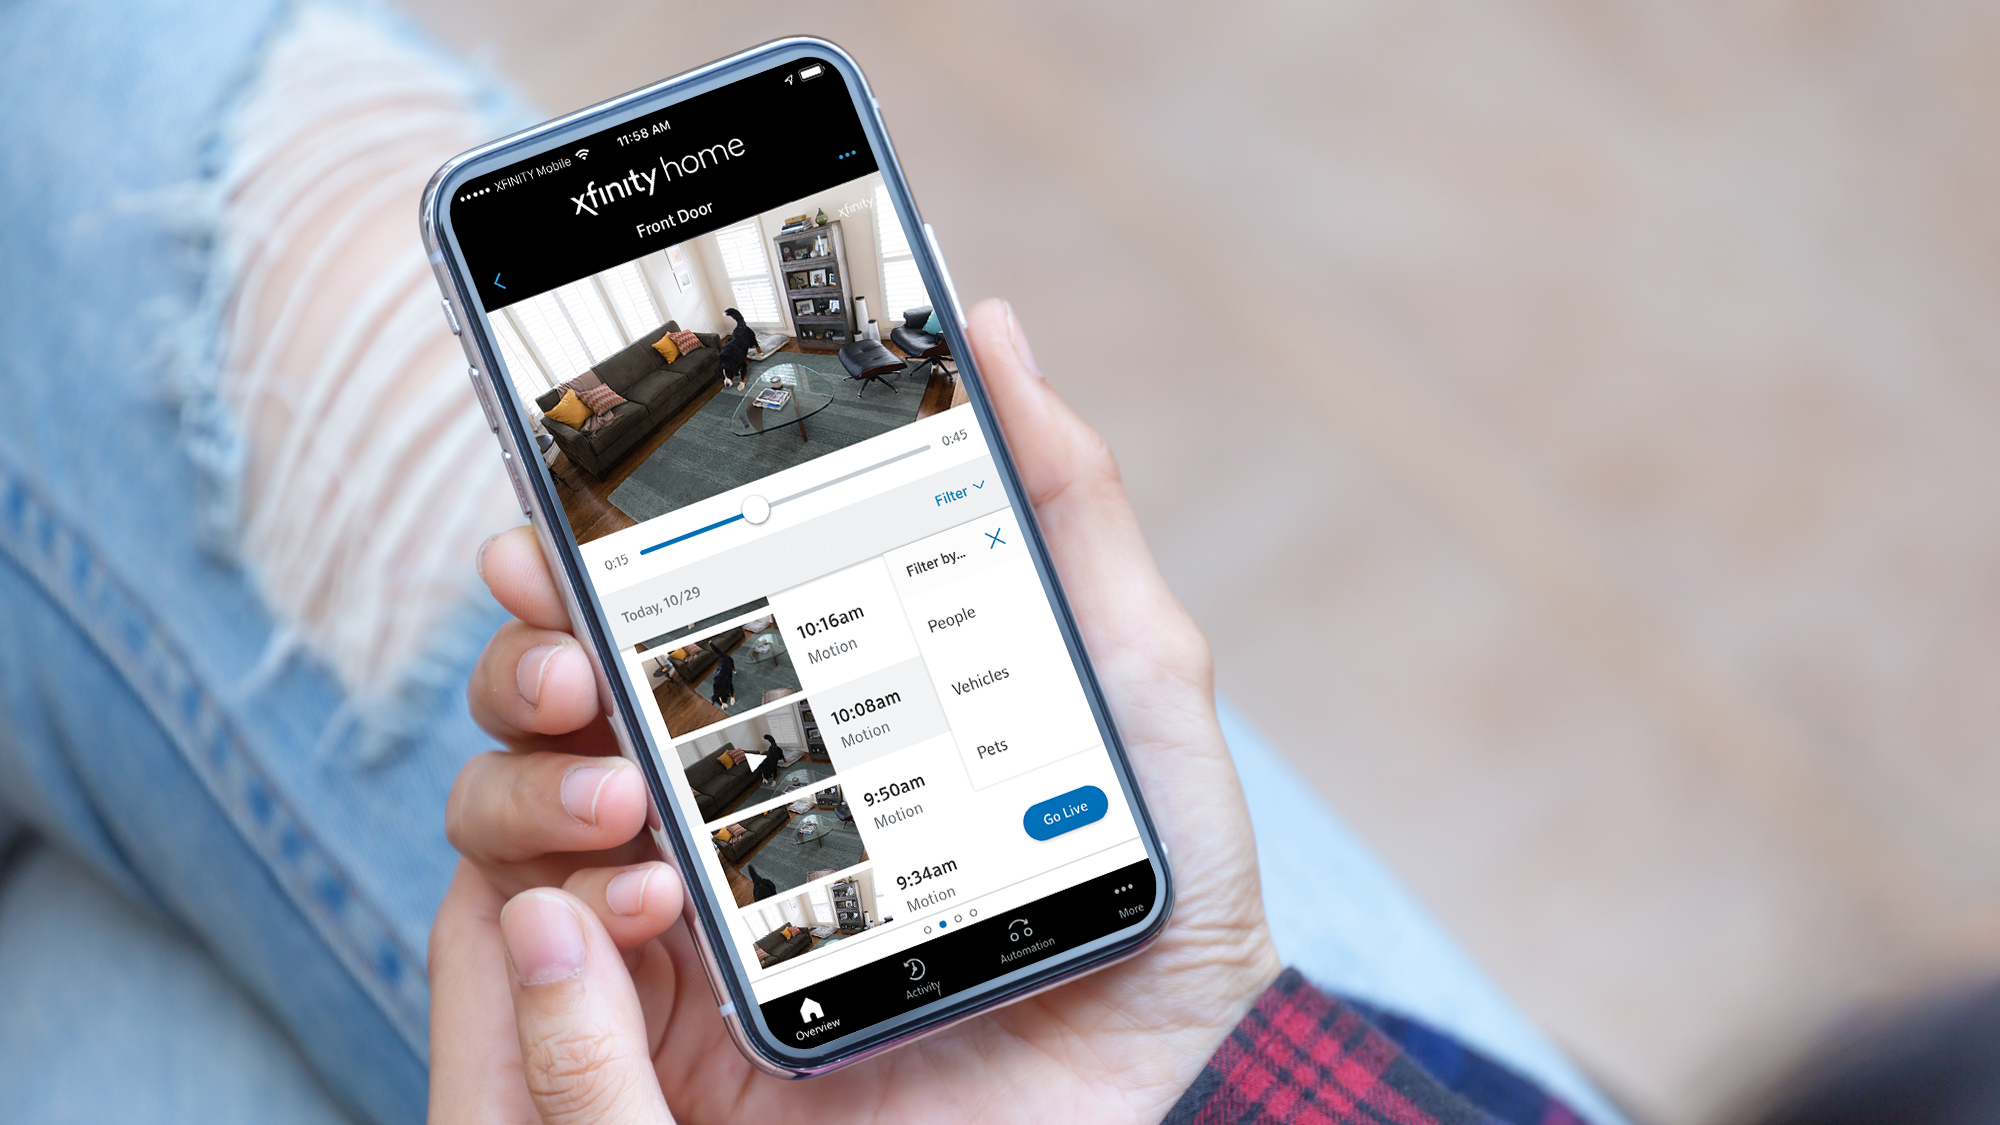 Xfinity Home App Pet Filter on a mobile phone